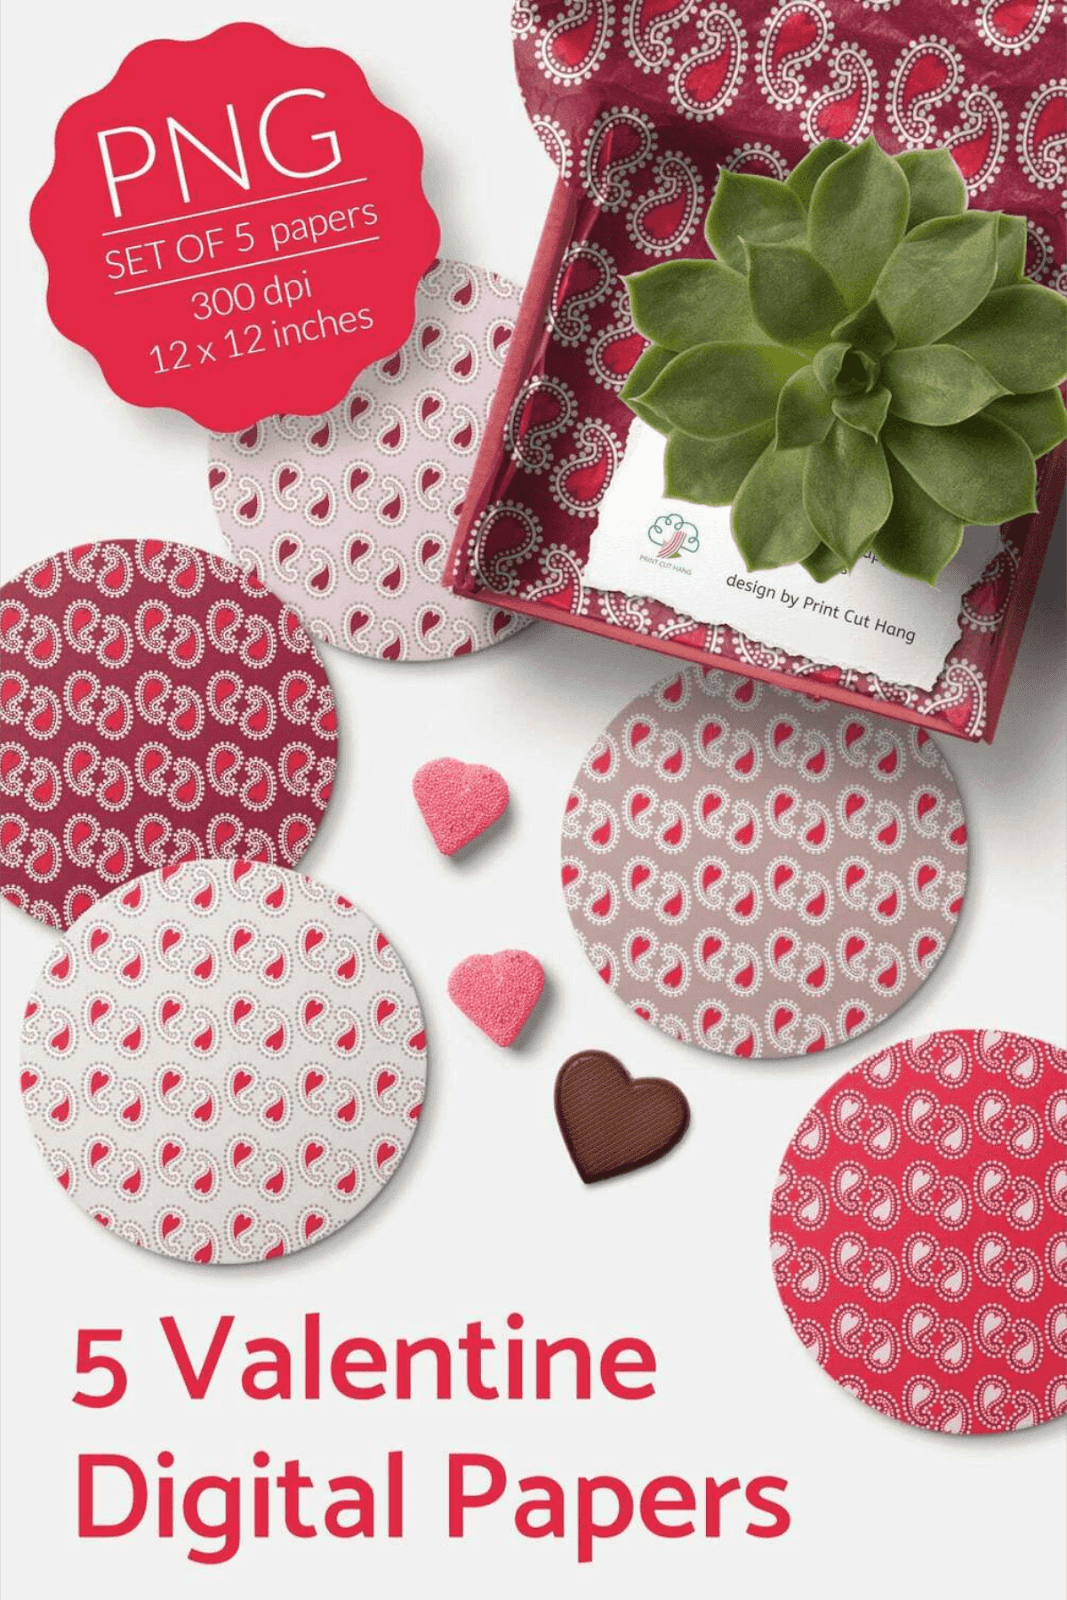 5 PAISLEY VALENTINE PAPERS